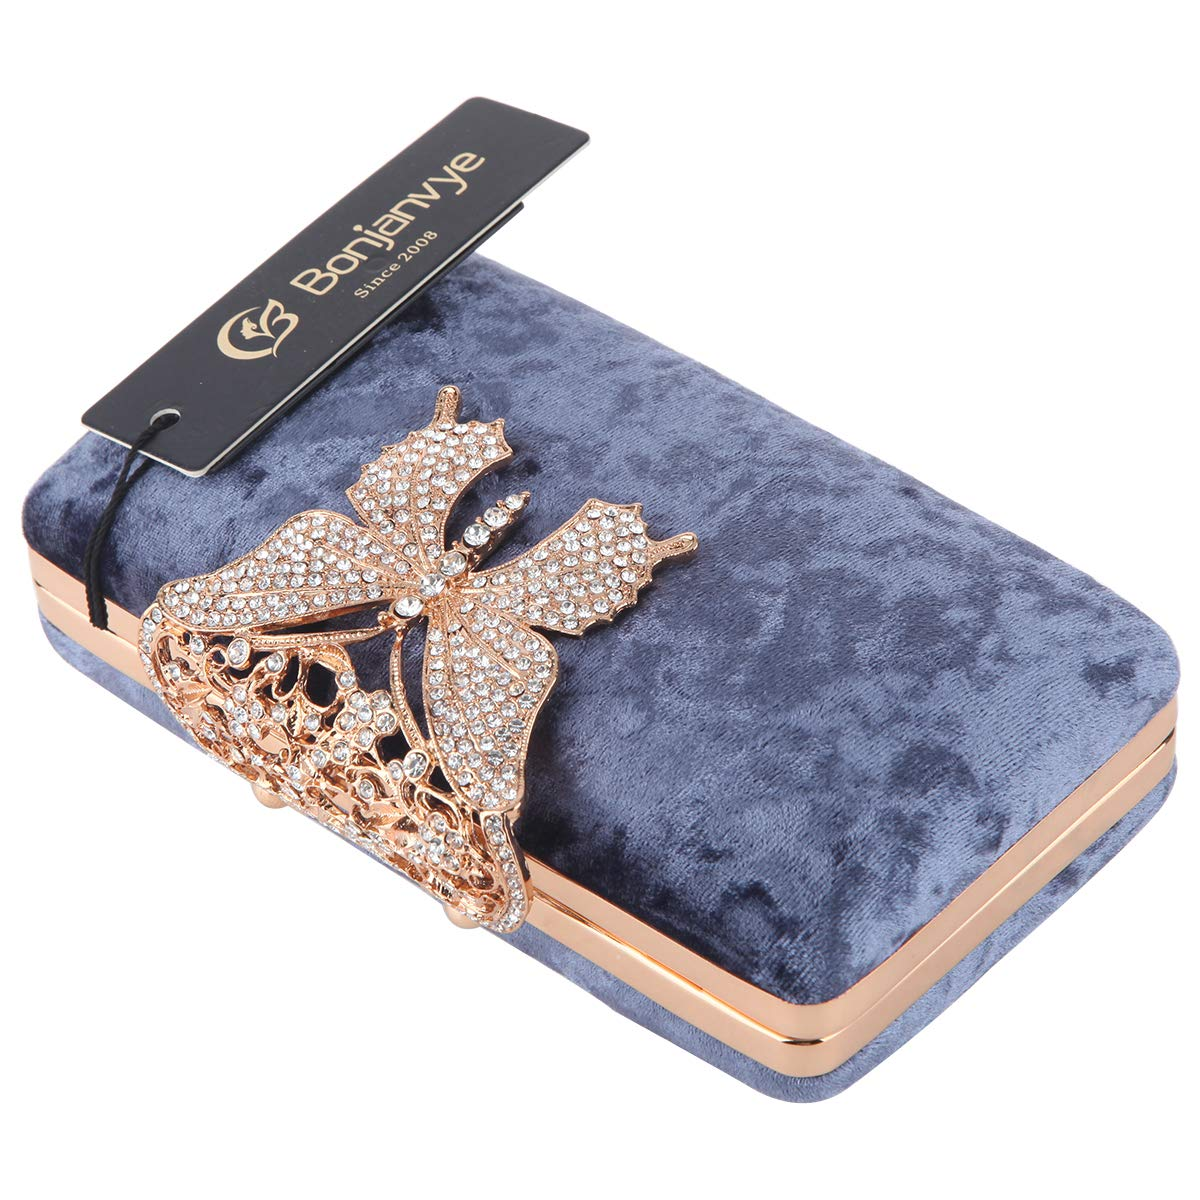 Bonjanvye Clutch Purses for Women and Clutches Double Pearl Bright Leather Evening Bags Grey